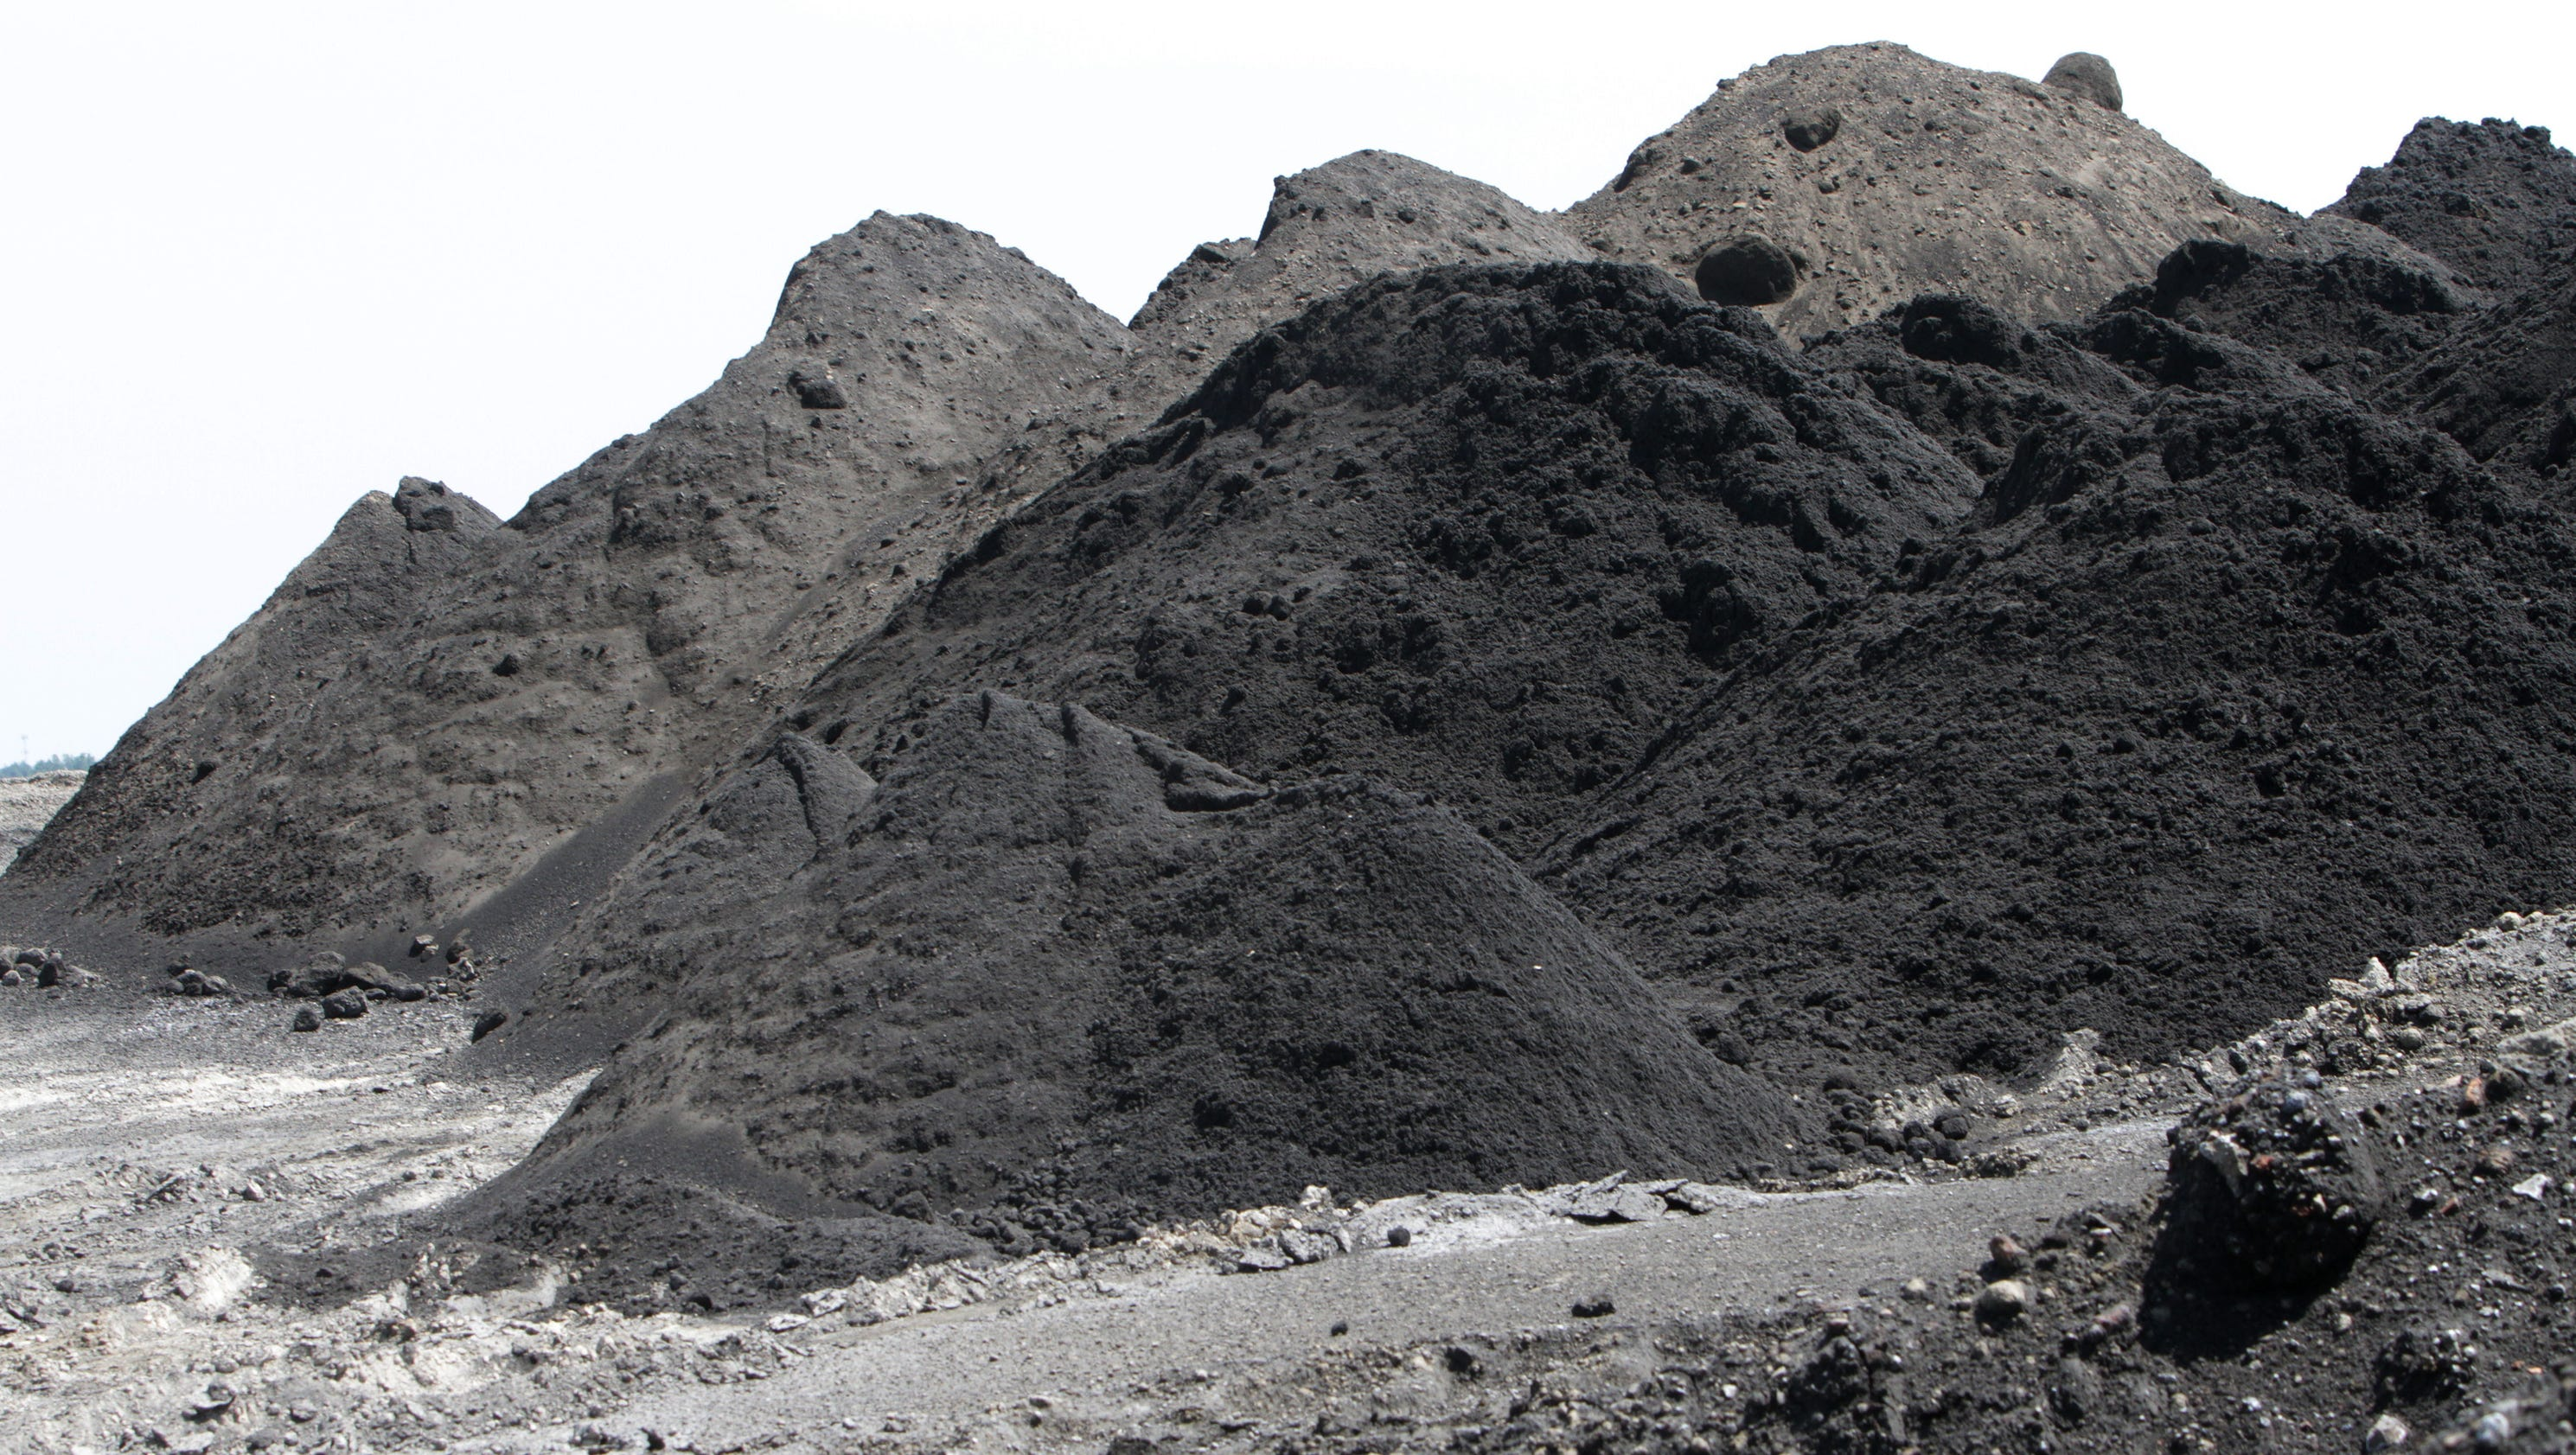 New coal ash rules could affect cu landfill plans